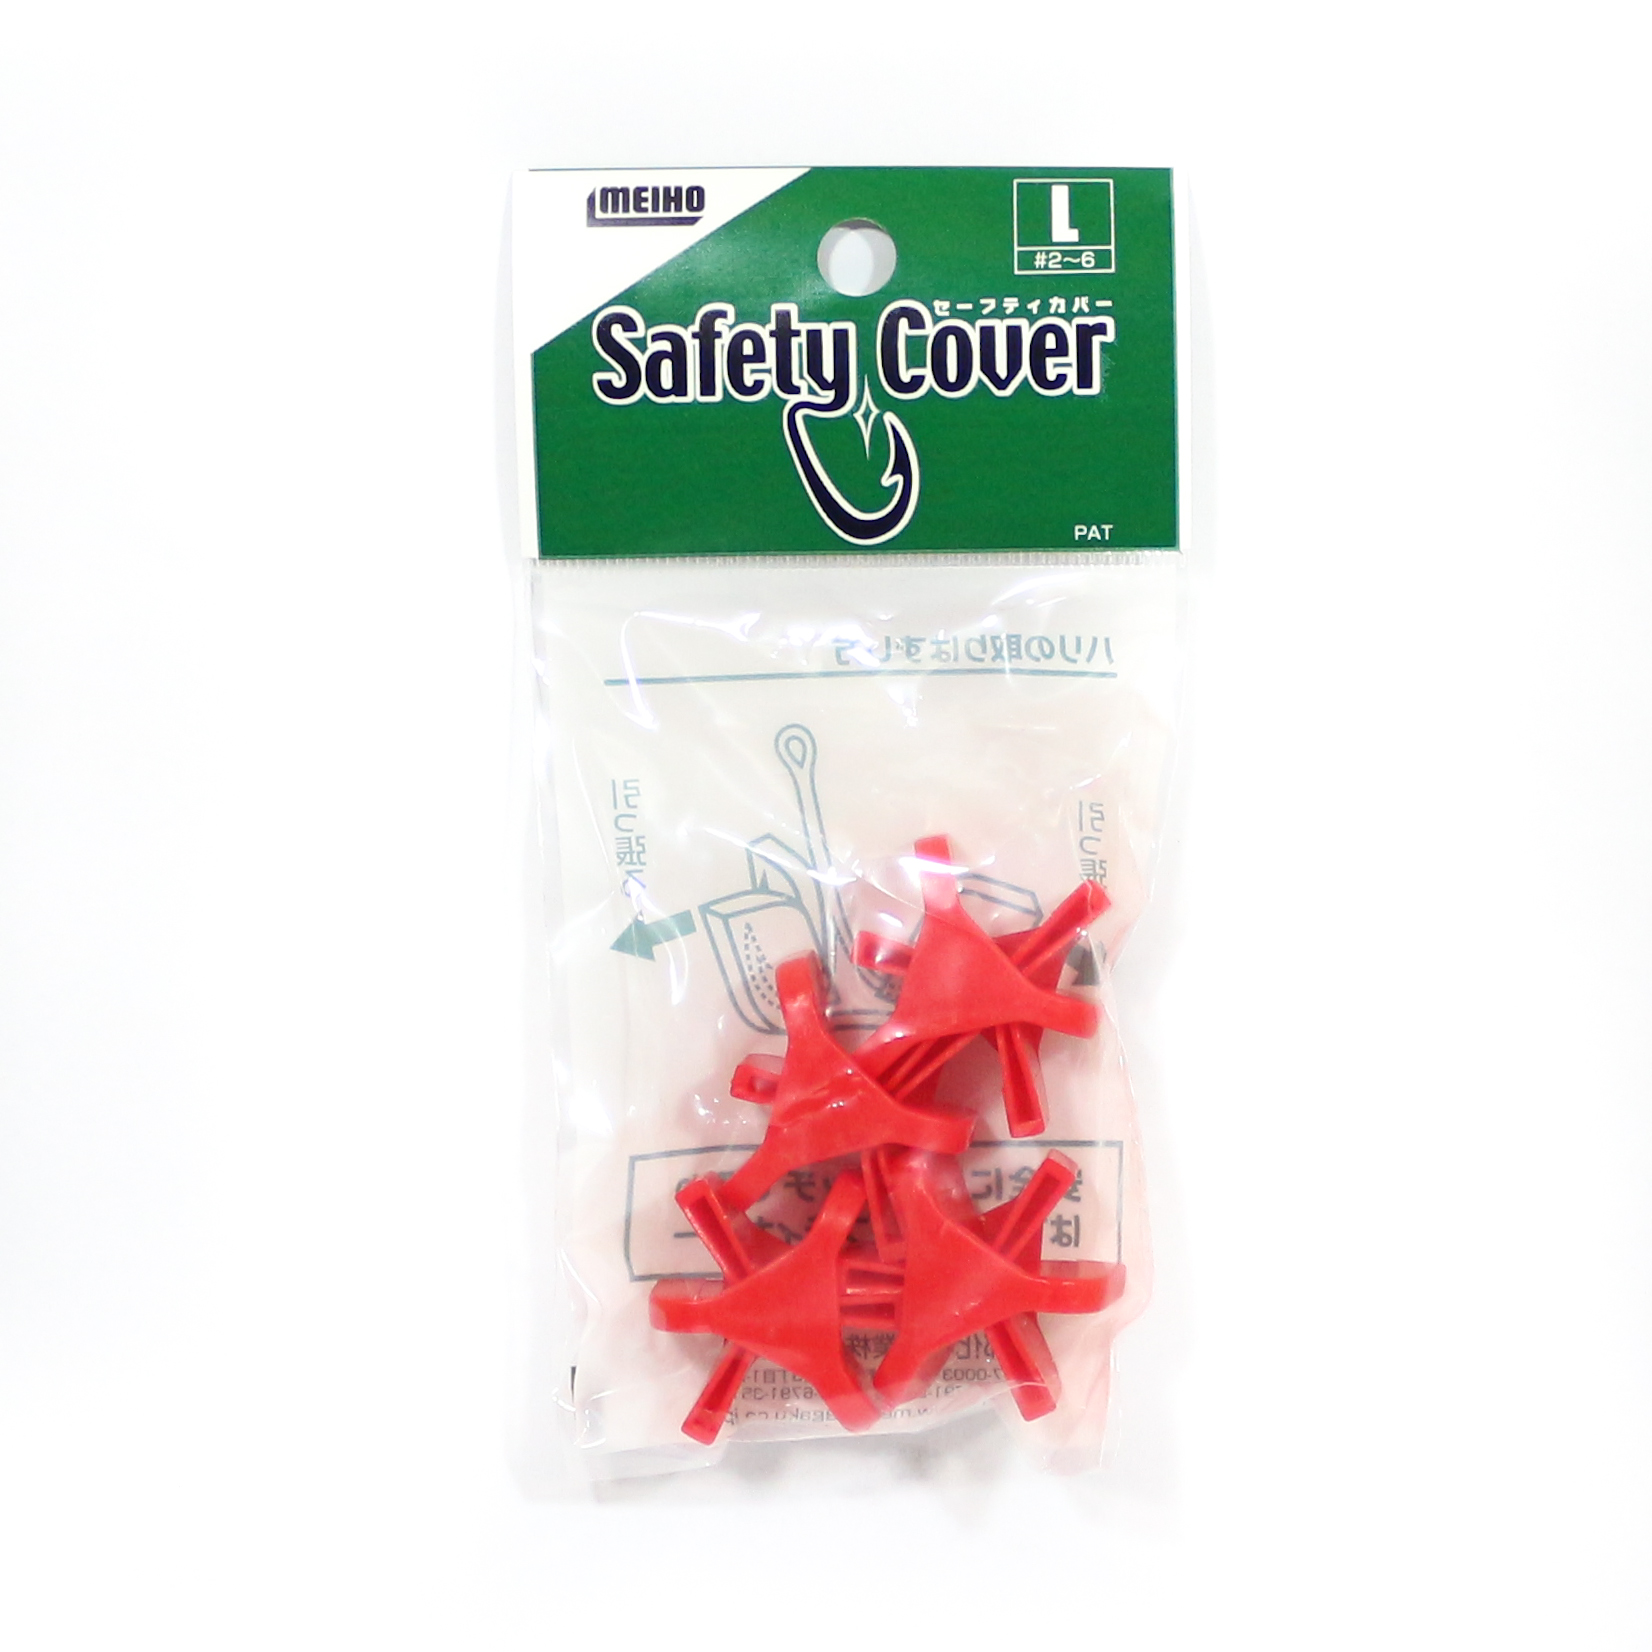 Meiho Safety Cover Hook Size L, Treble Size 2-6 (0808)